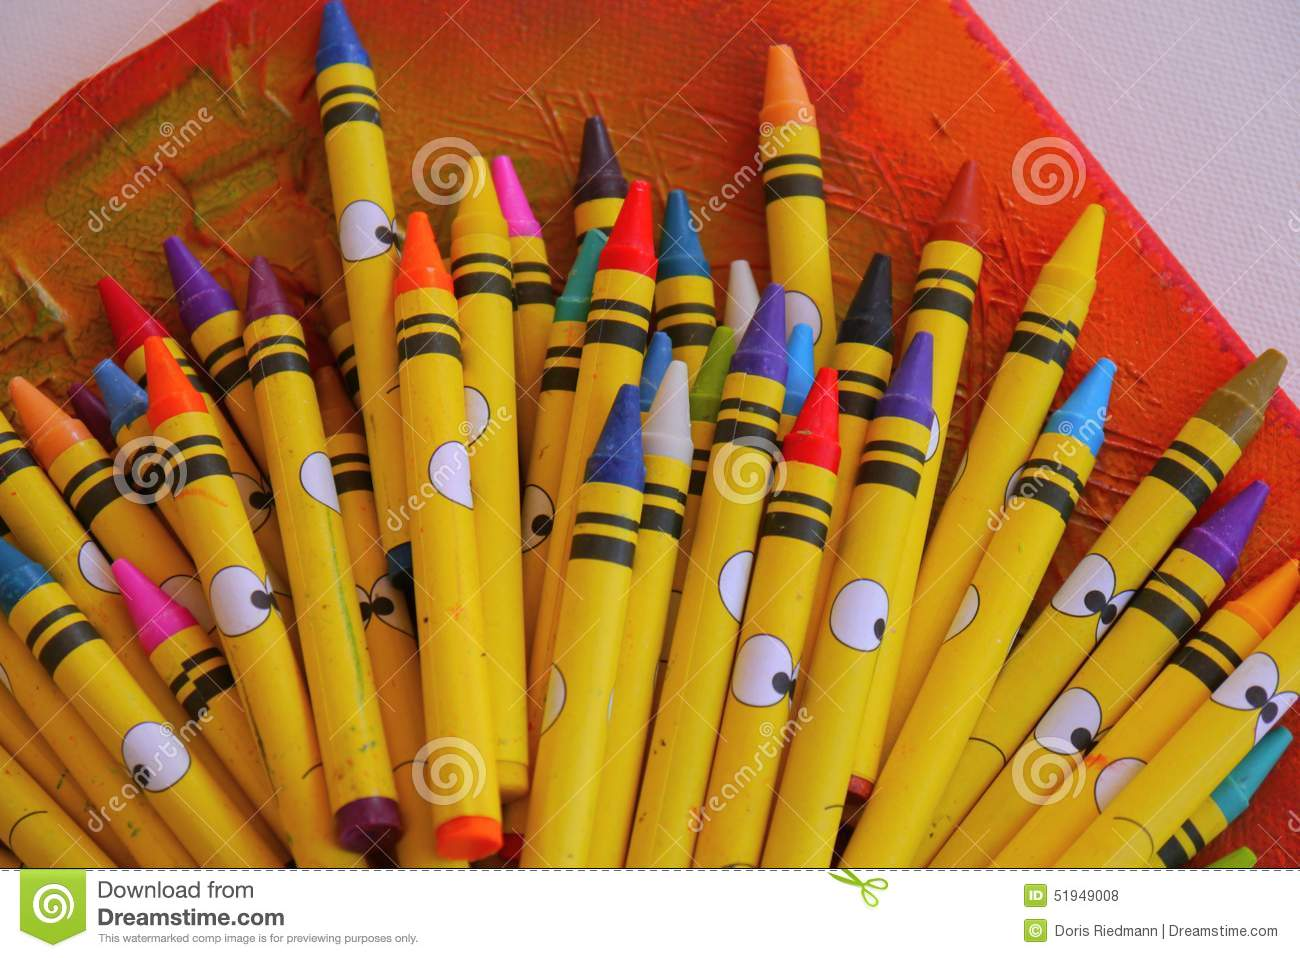 Uncategorized Kids Drawing Tools wax pens colours painting drawing artist tools art stock photo royalty free photo